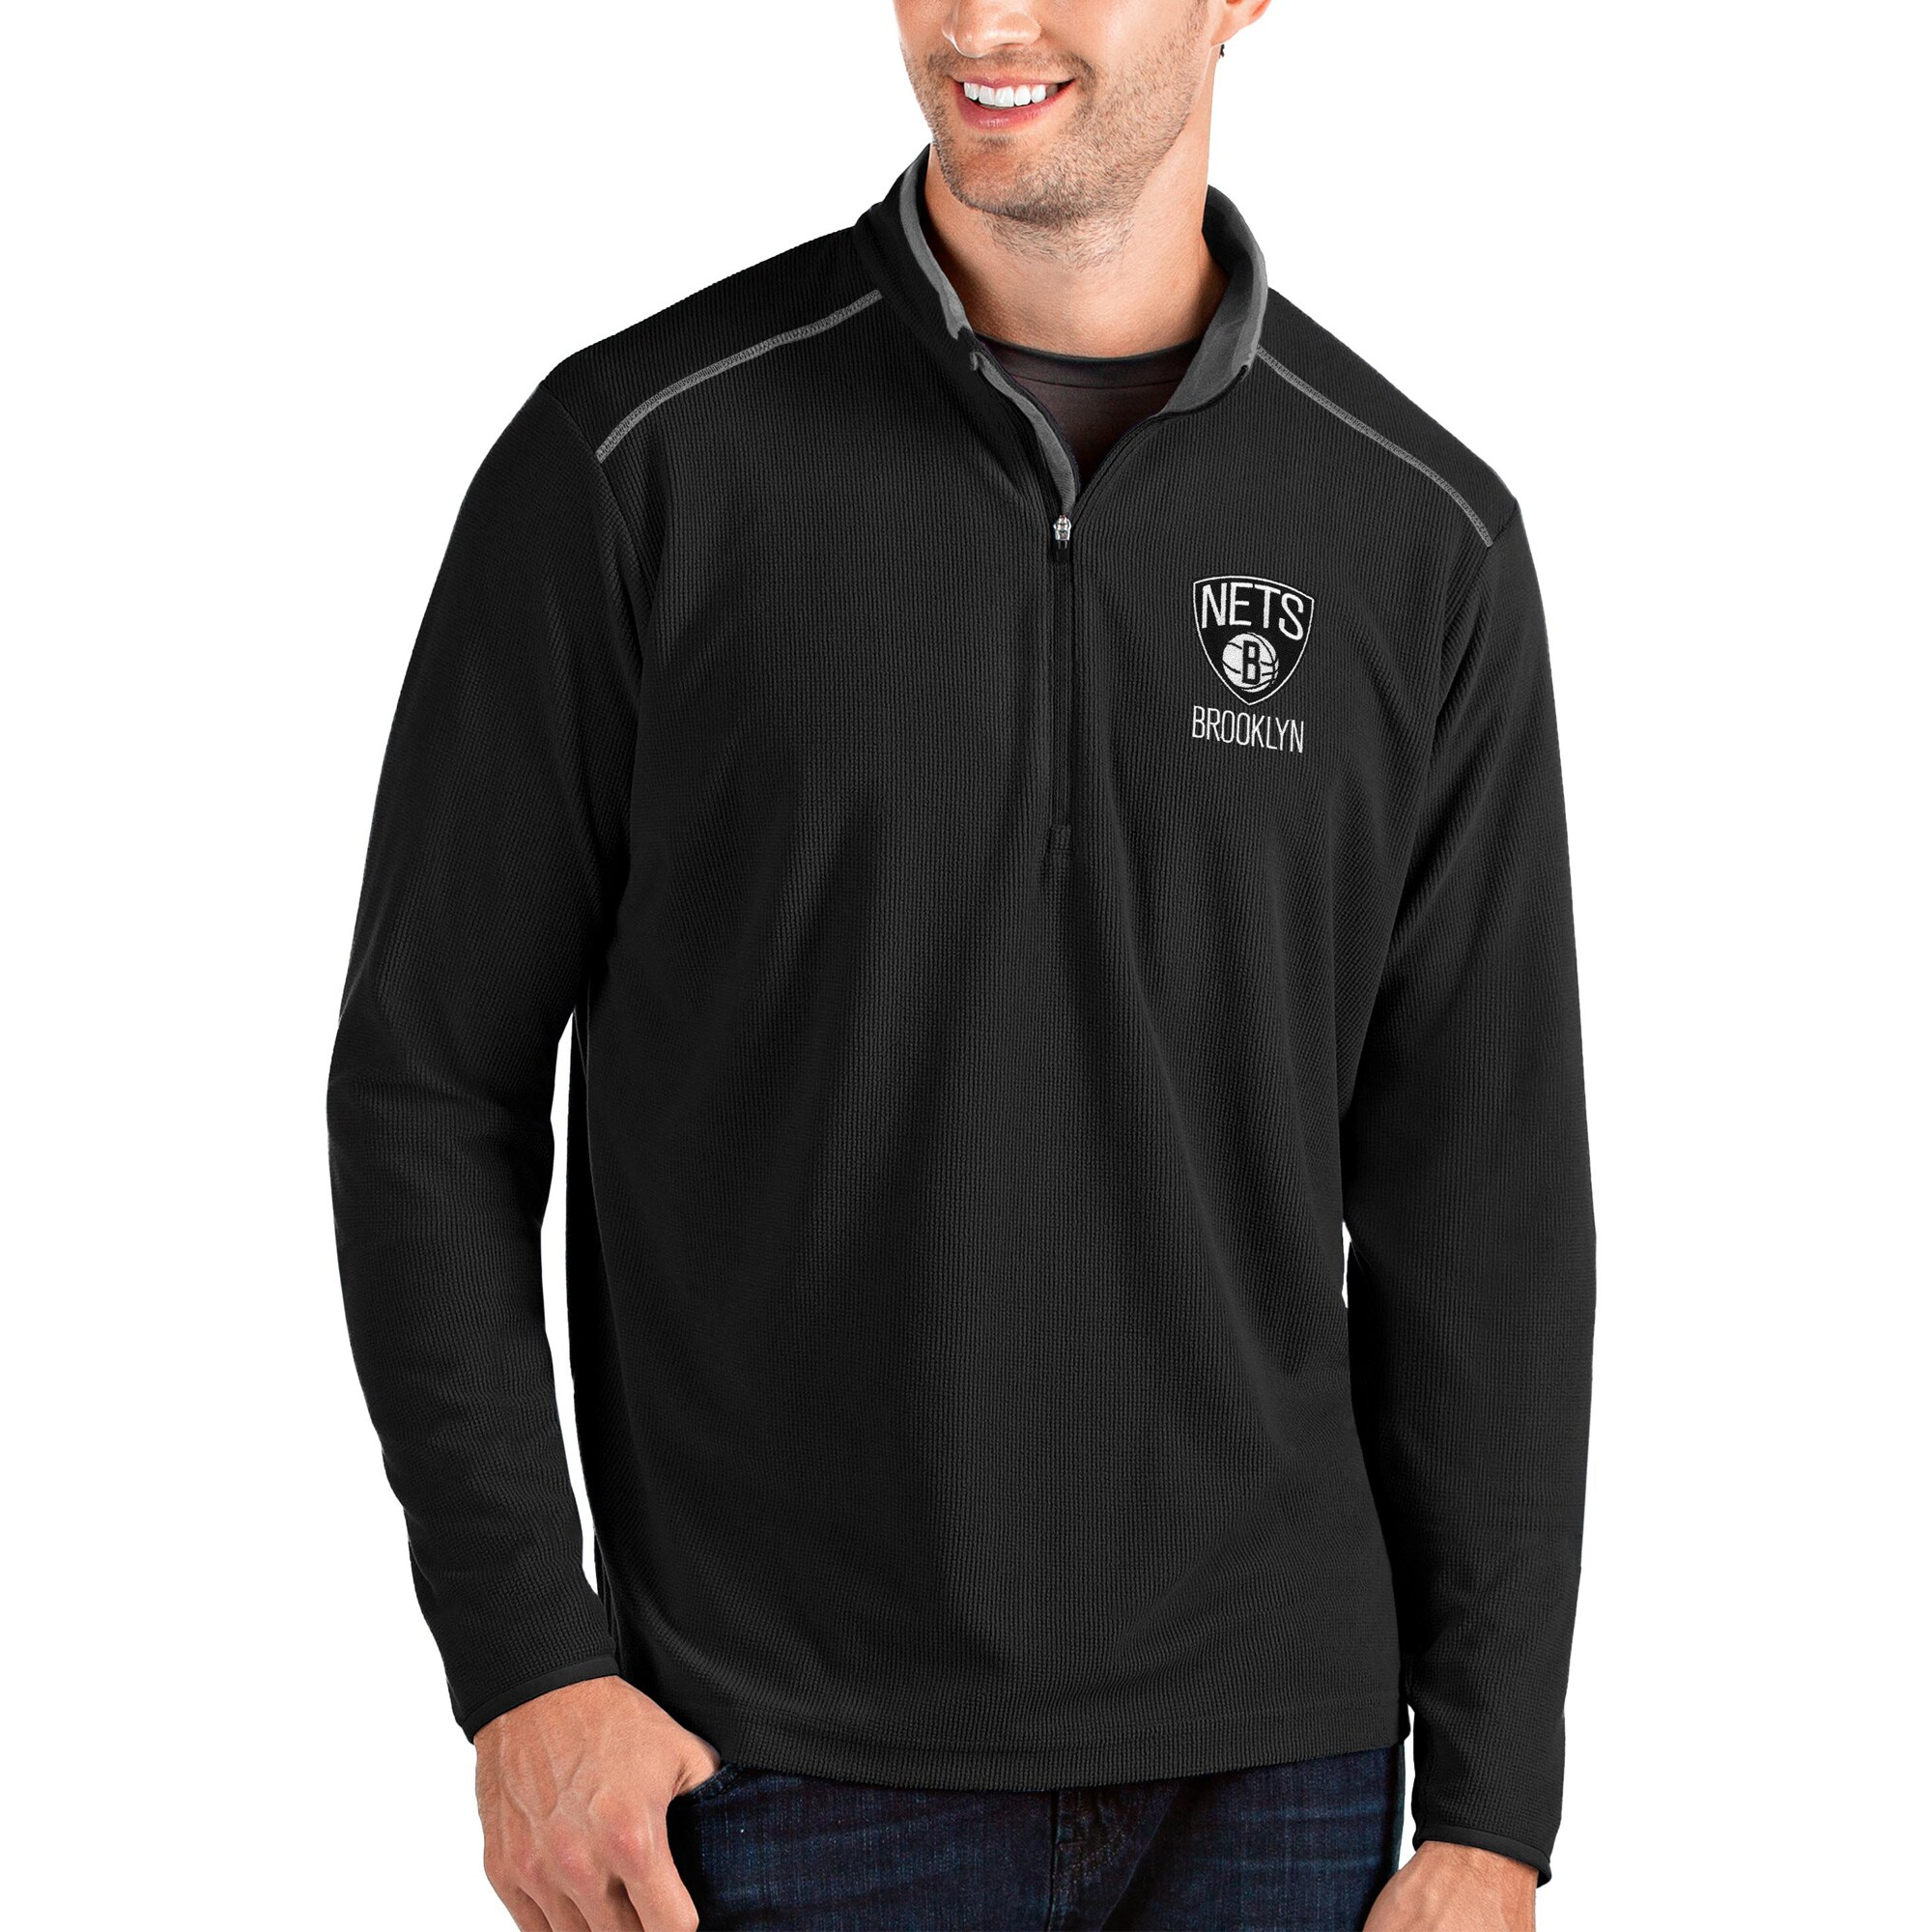 Brooklyn Nets Antigua Glacier Quarter-Zip Pullover Jacket - Black/Gray